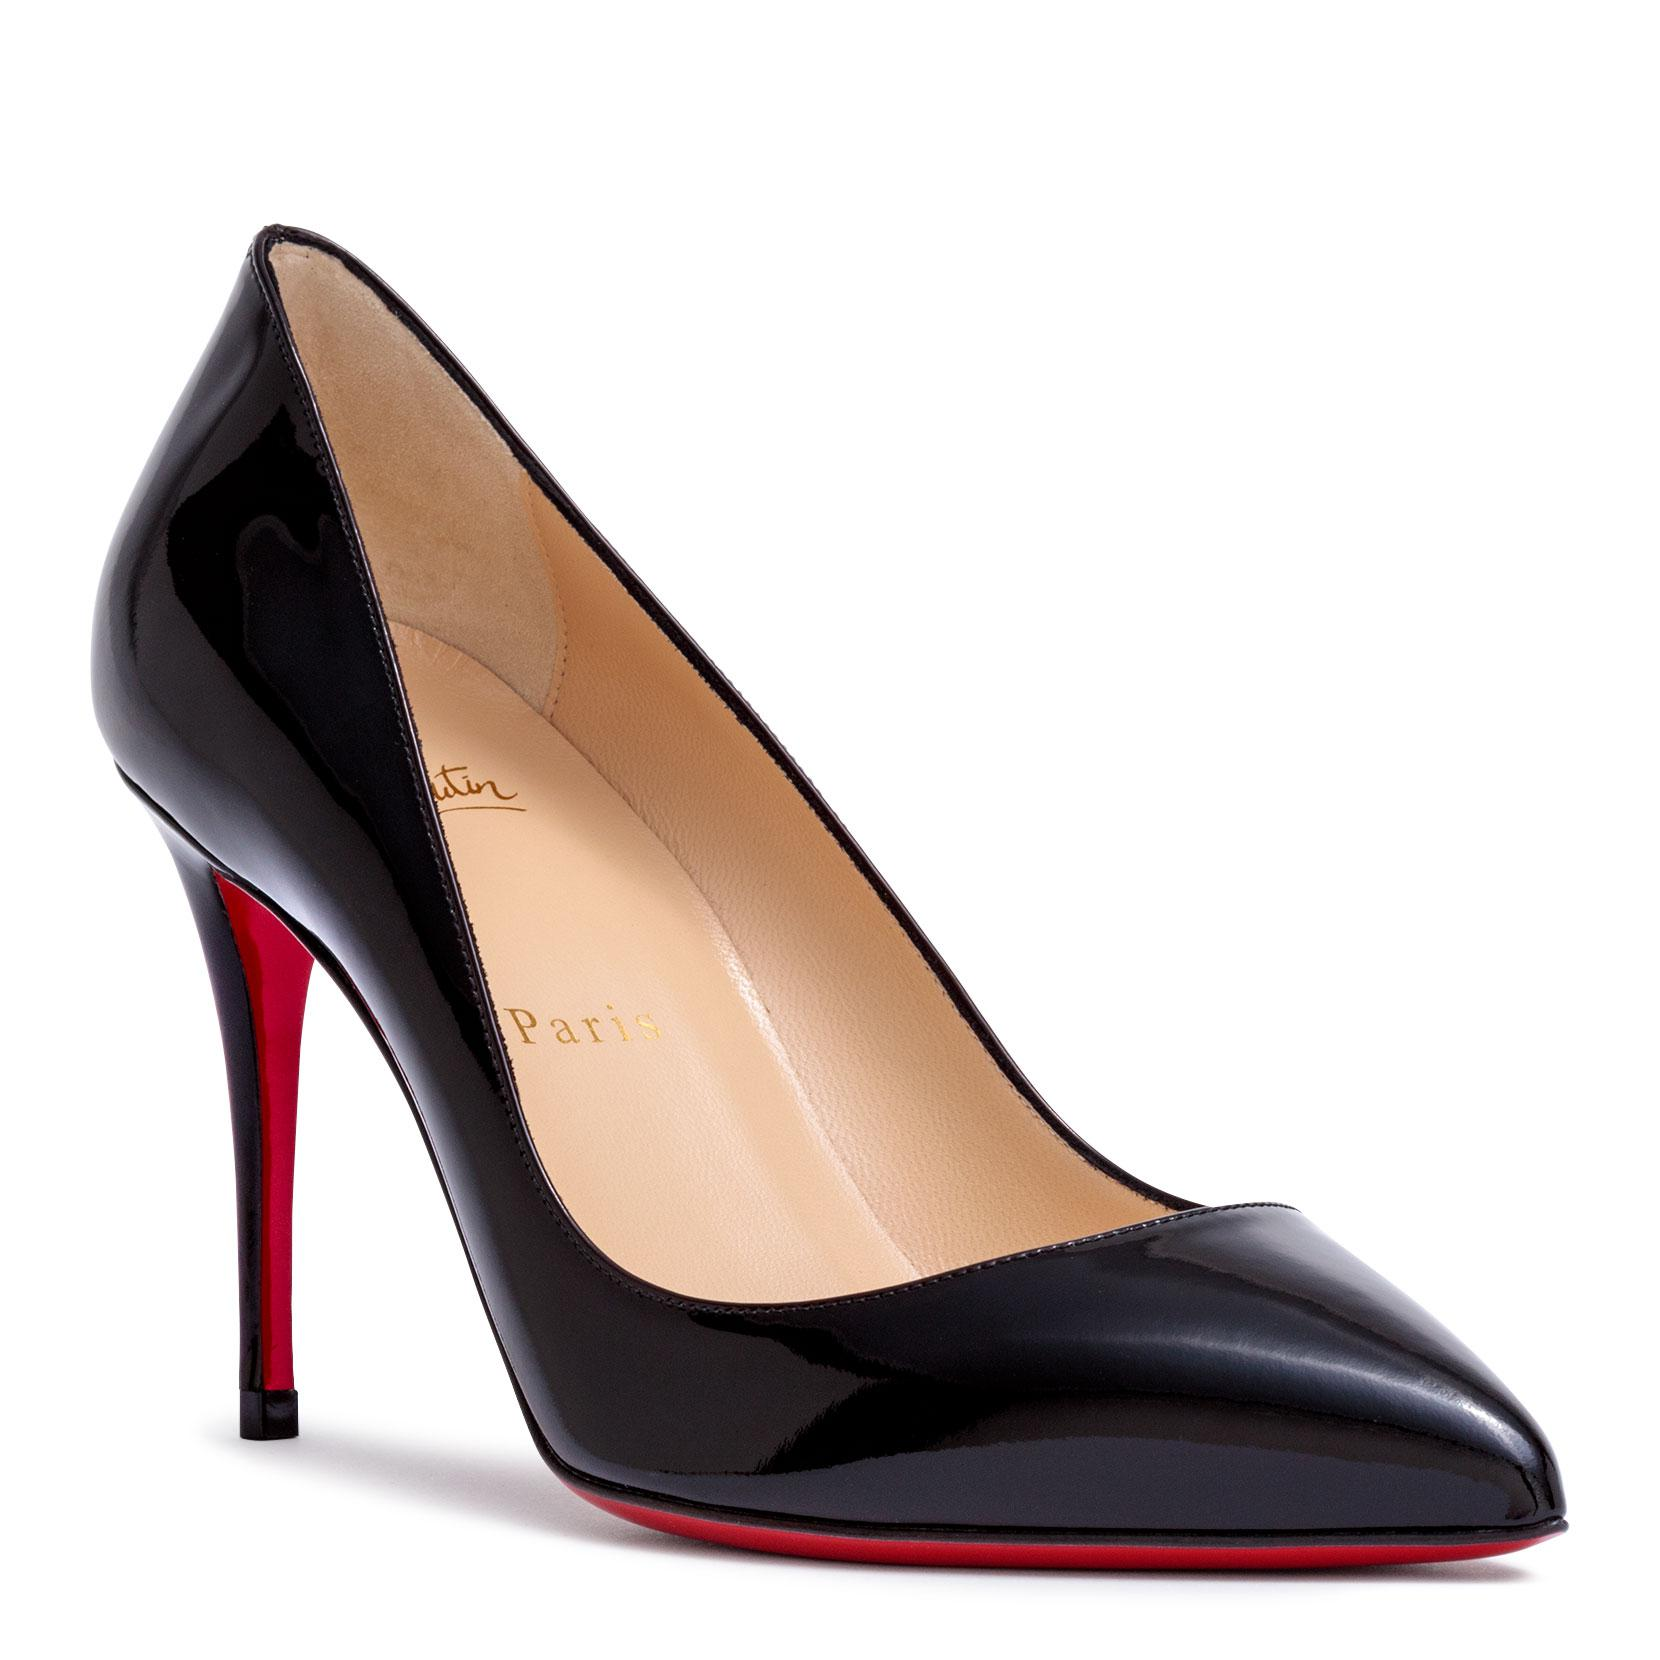 6b8e785953 Christian Louboutin Pigalle Follies 85 Black Patent Leather Pumps in ...